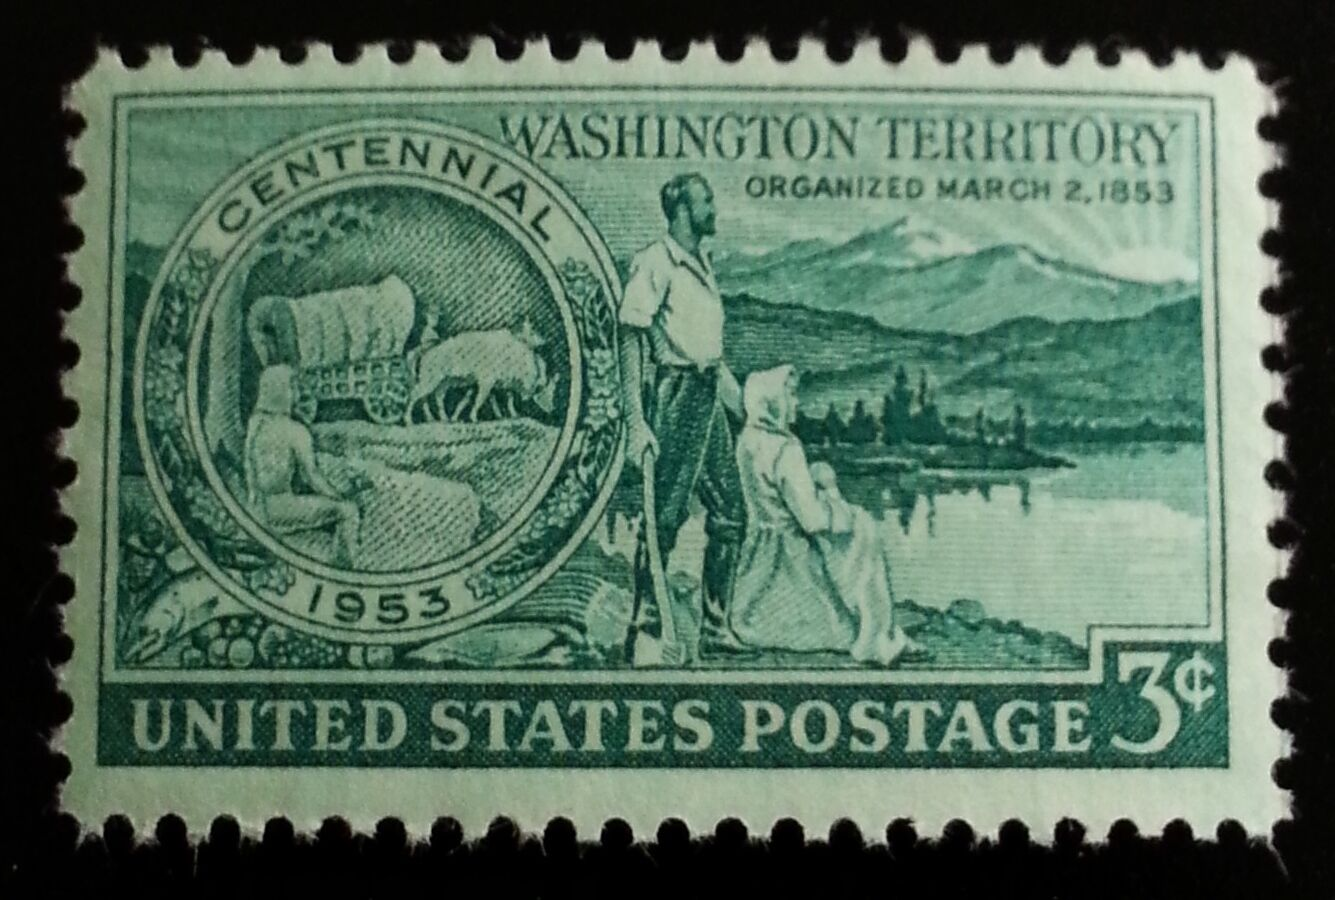 1953 3c Washington Territory Centennial Scott 1019 Mint